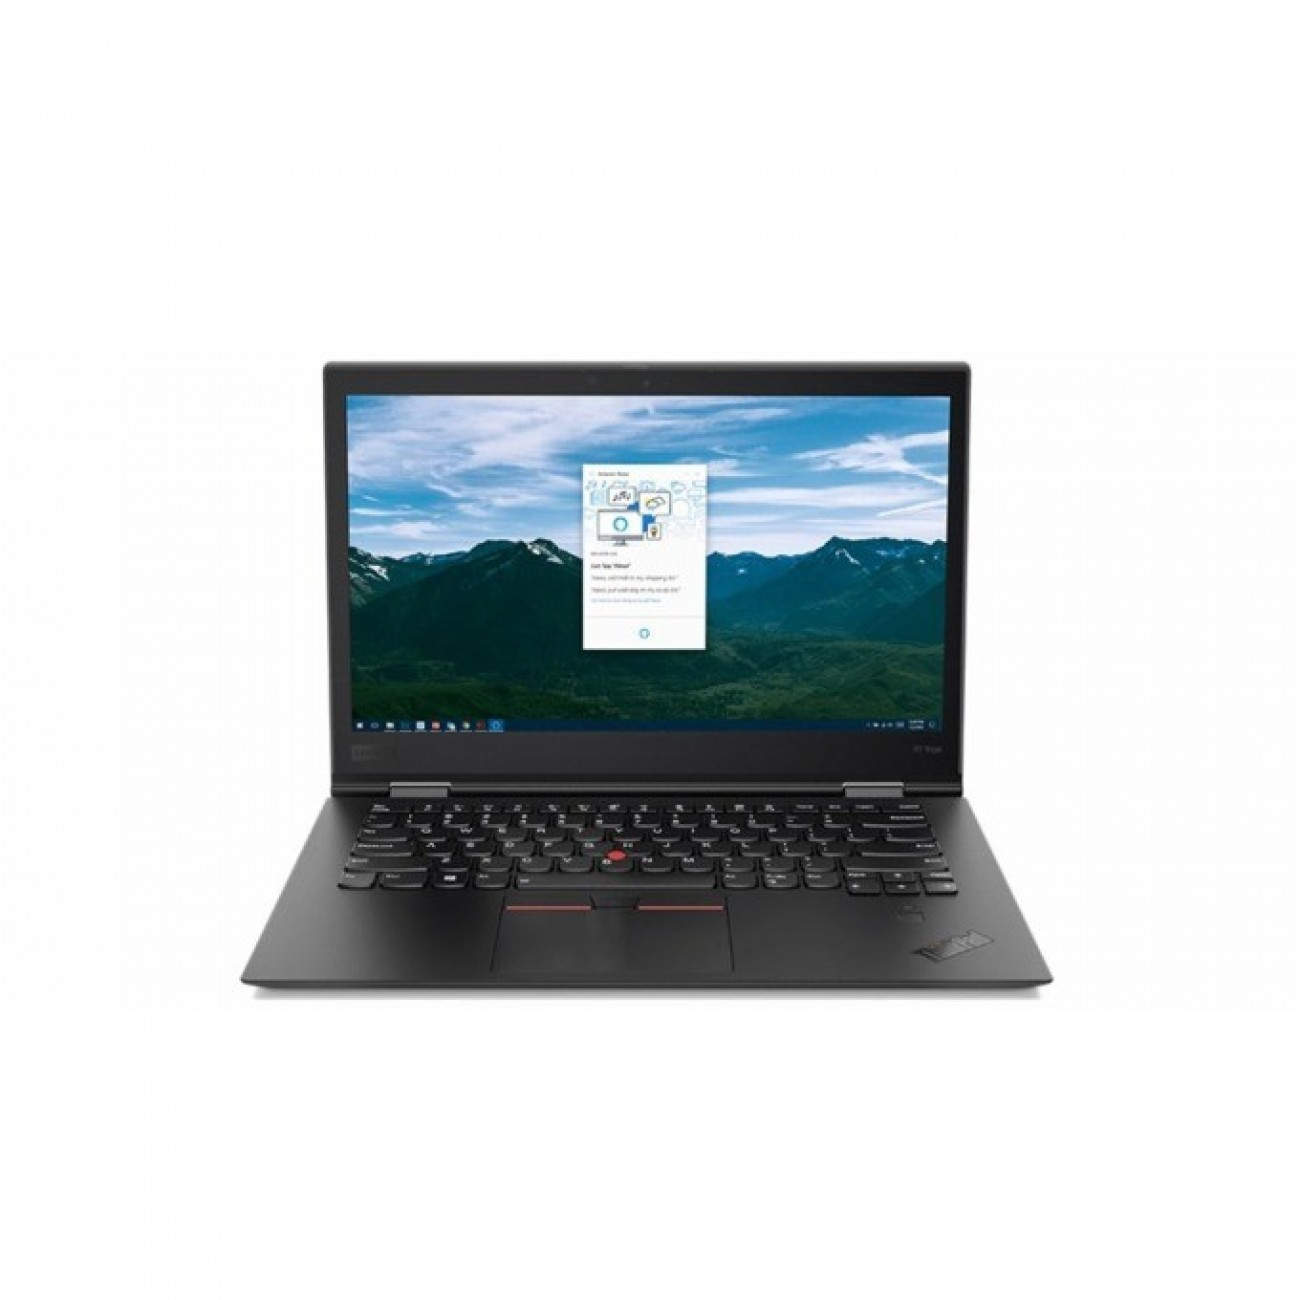 Лаптоп Lenovo ThinkPad X1 Yoga 3 (20LD002MBM), четириядрен Kaby Lake R Intel Core i7-8550U 1.8/4.0 GHz, 14.0 (35.56 cm) WQHD IPS Anti-Glare Touchscreen Display, (HDMI), 16GB DDR4, 512GB SSD, 2x Thunderbolt 3, Windows 10, 4G/LTE, 1.40 kg в Лаптопи -  | All